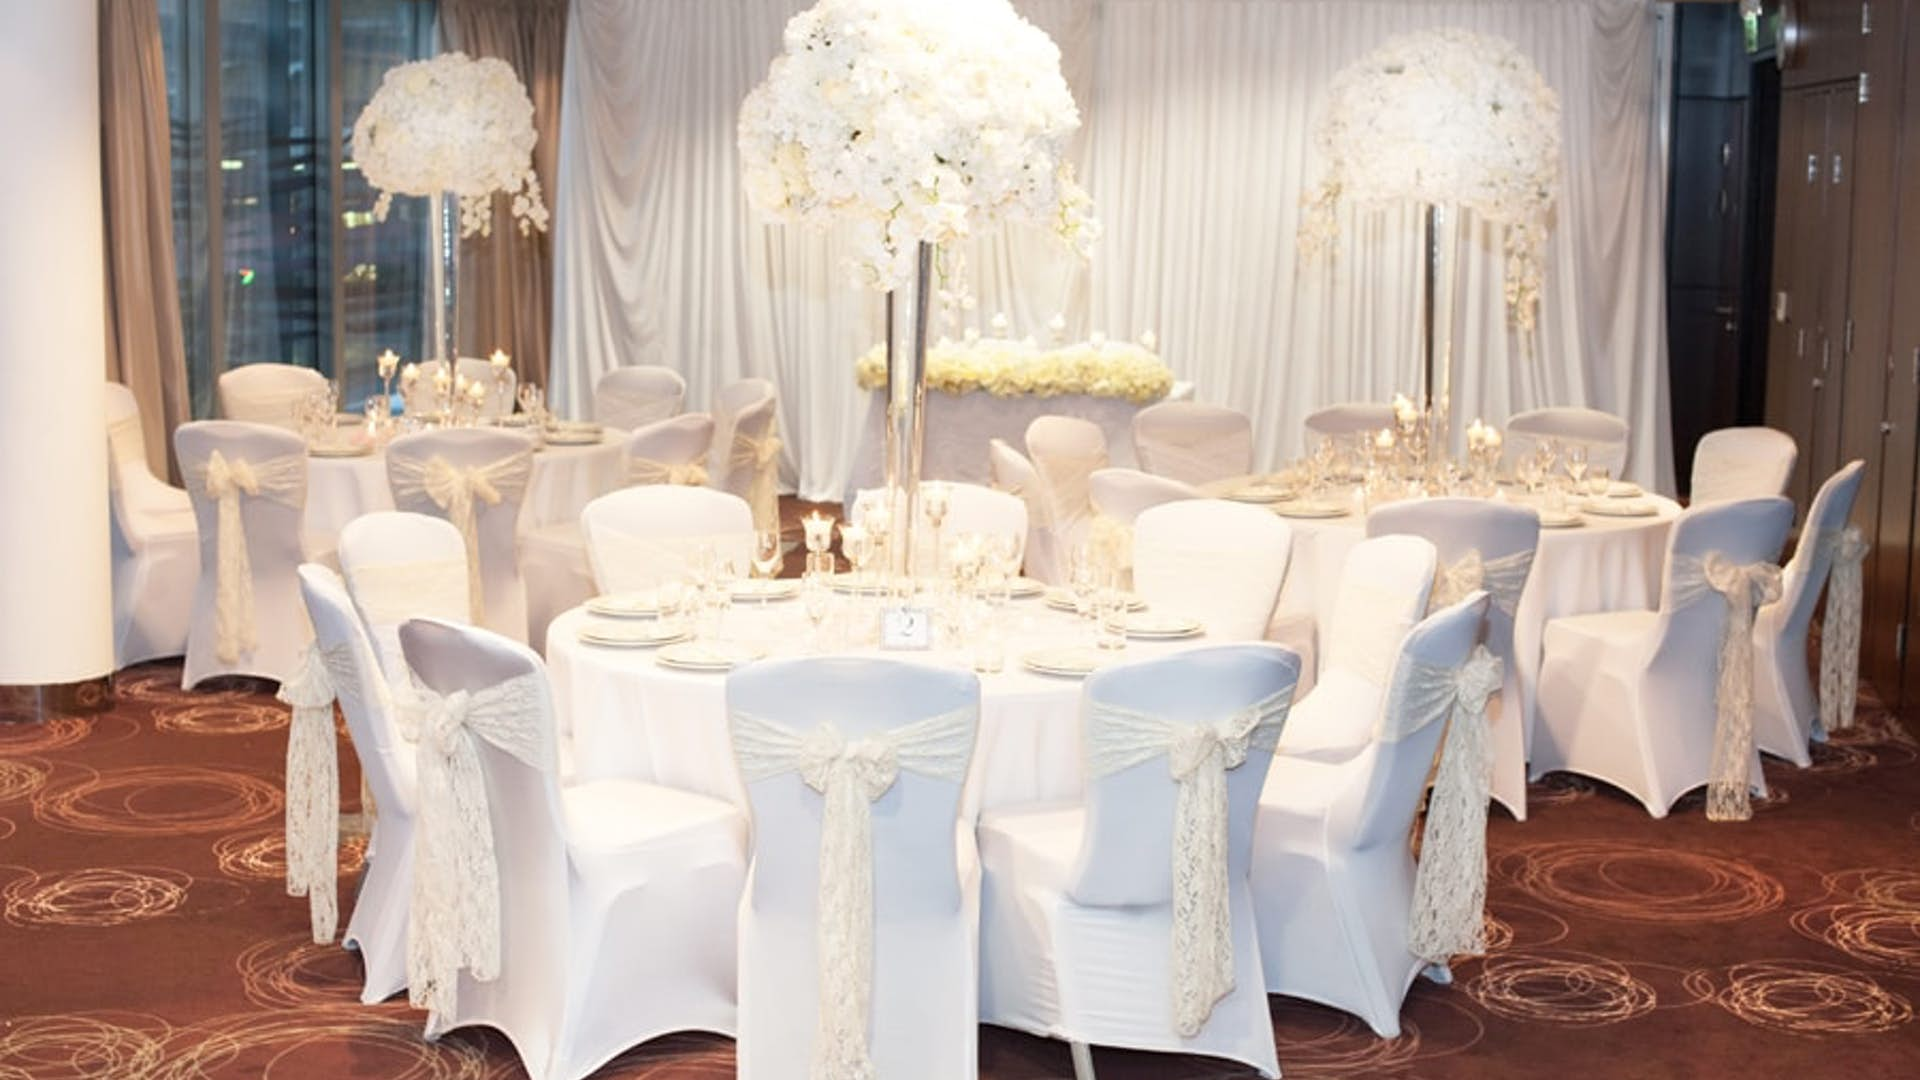 Victoria 3 Suite   Events   Holiday Inn London - Whitechapel